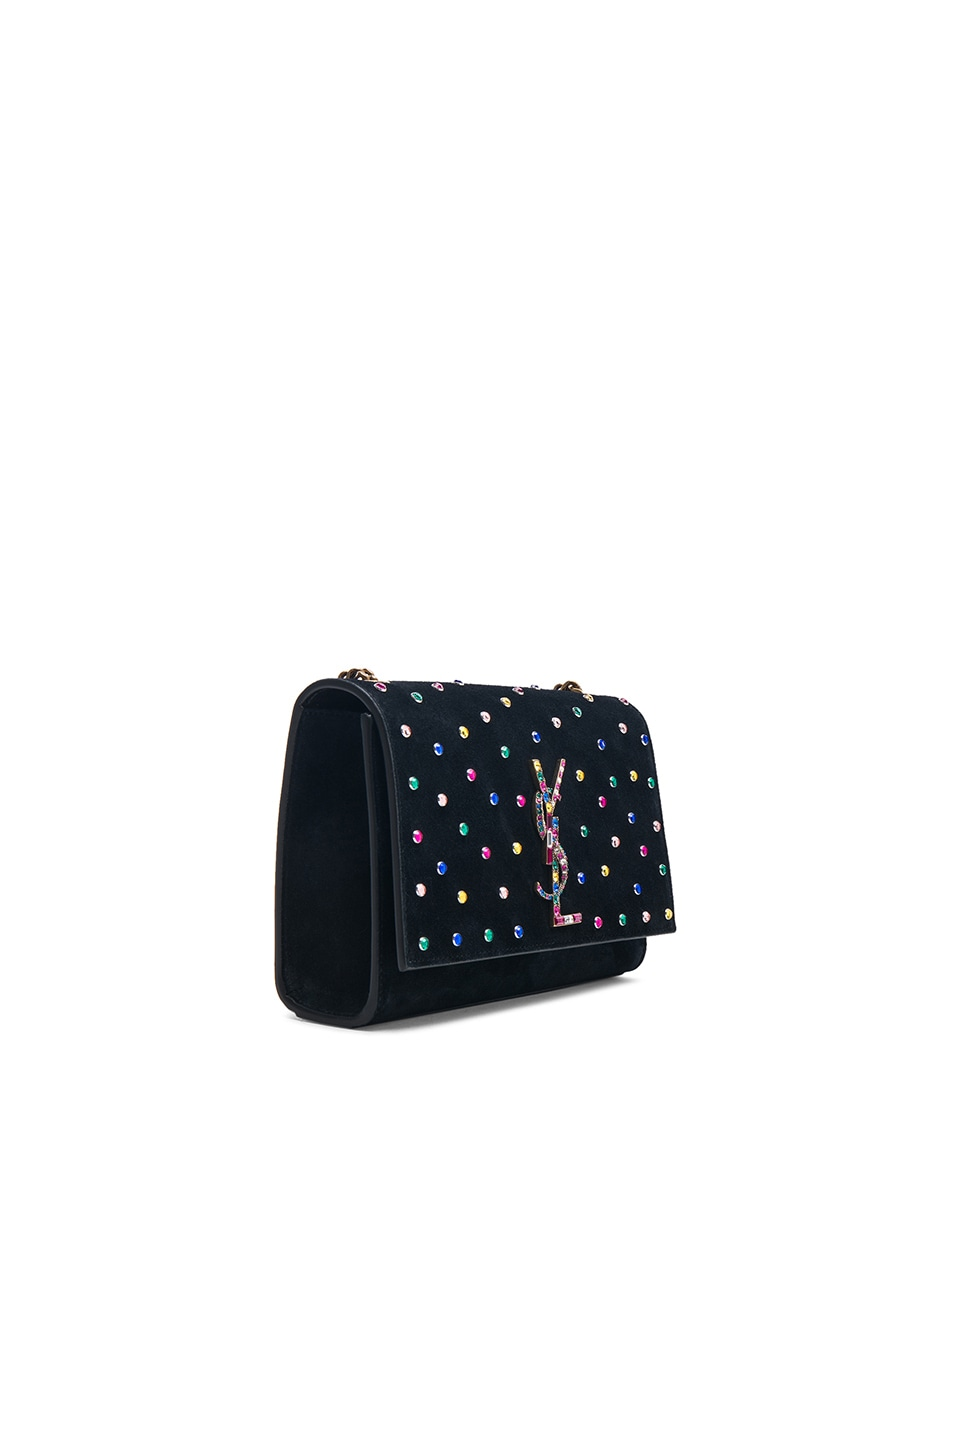 Image 3 of Saint Laurent Small Crystal Embellished Suede Monogramme Kate Chain Bag in Black & Multicolor